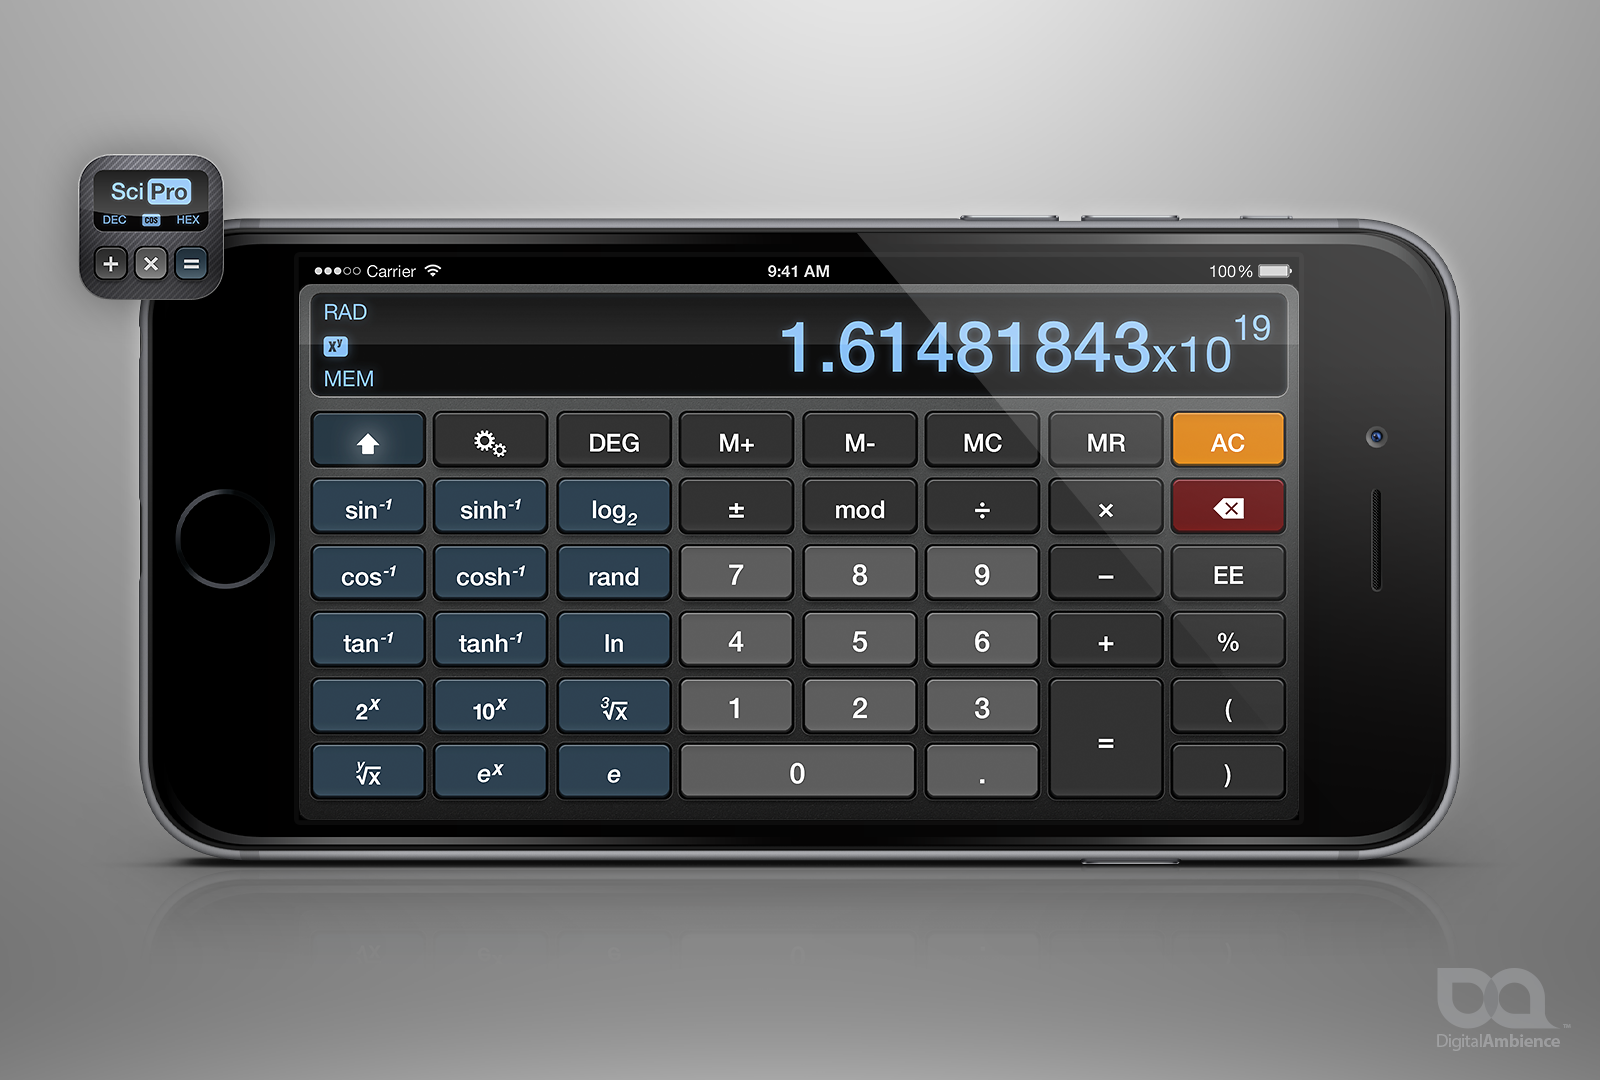 Sci:Pro Calculator for iPhone, iPad, iPod Touch – Digital